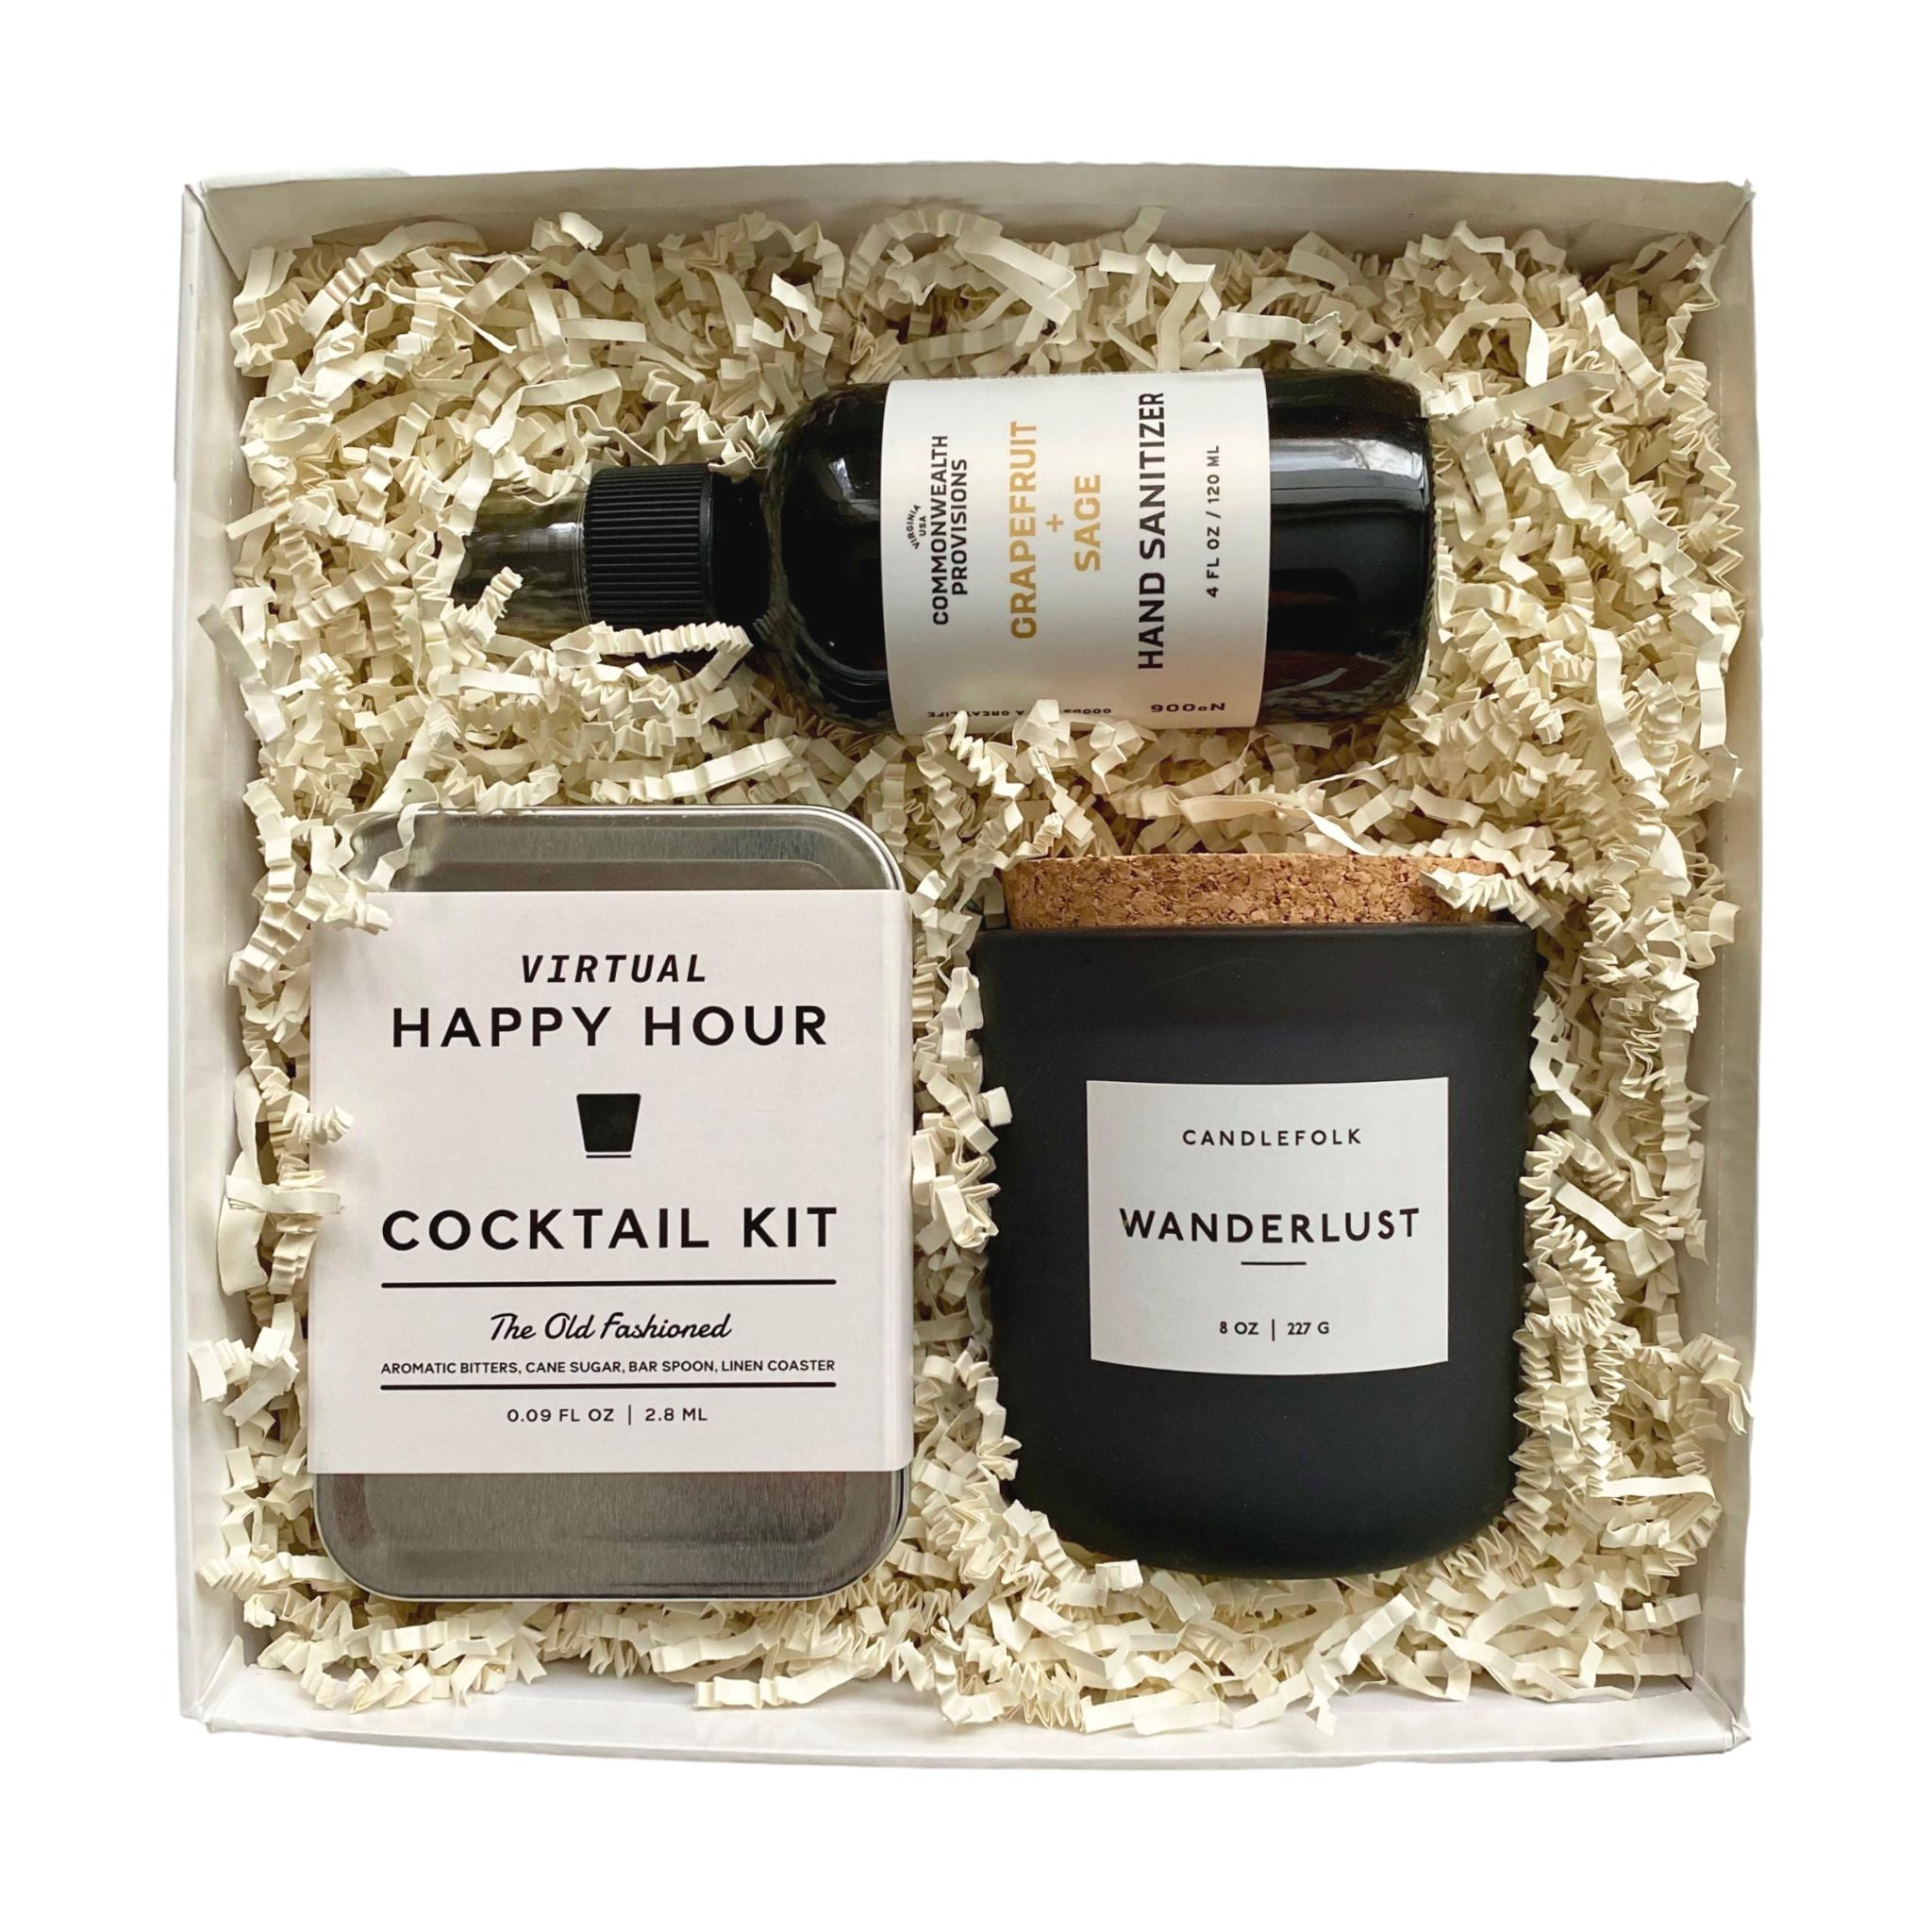 Virtual Happy Hour Cocktail Kit Gift Box - Giften Market